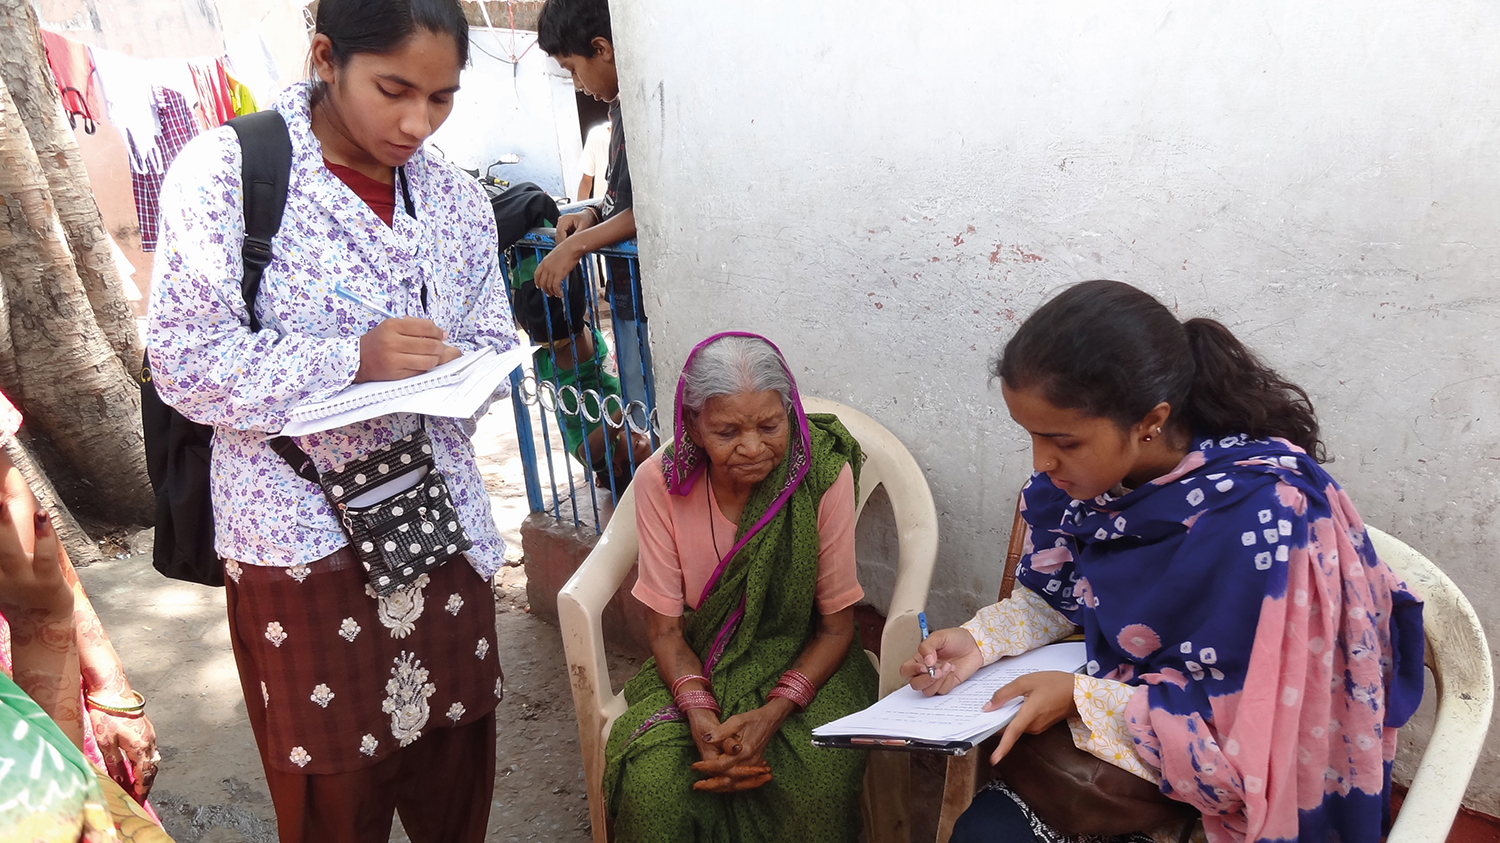 Two female data collectors take information from a woman in Bhopal, India. Two of the women sit on chairs inside and the other stands next to them, writing.